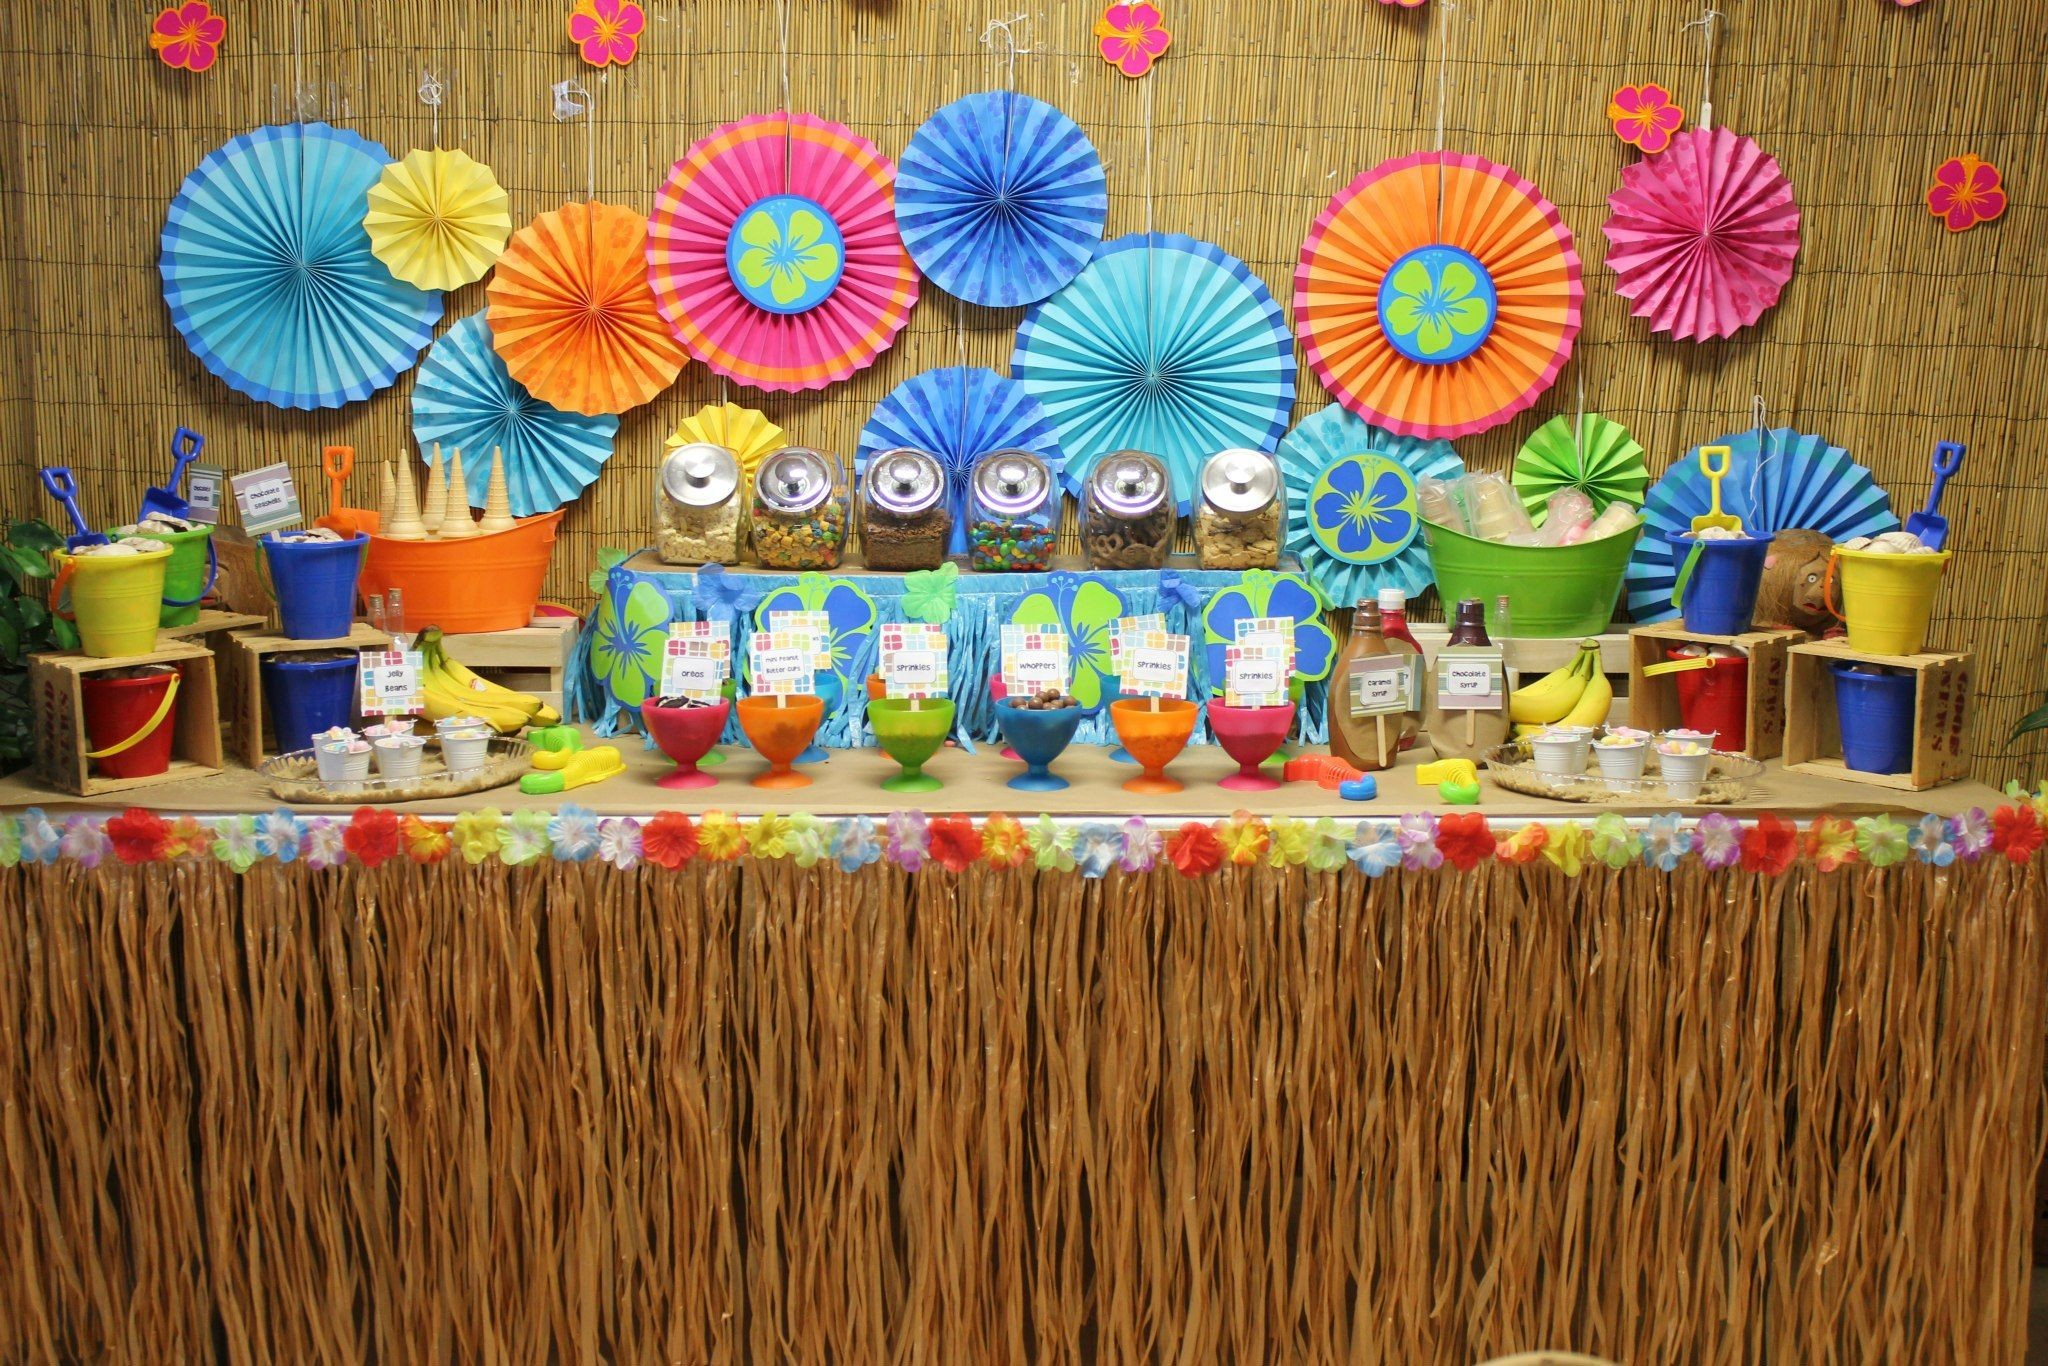 Res: 2048x1366, hawaiian party wallpaper - Buscar con Google